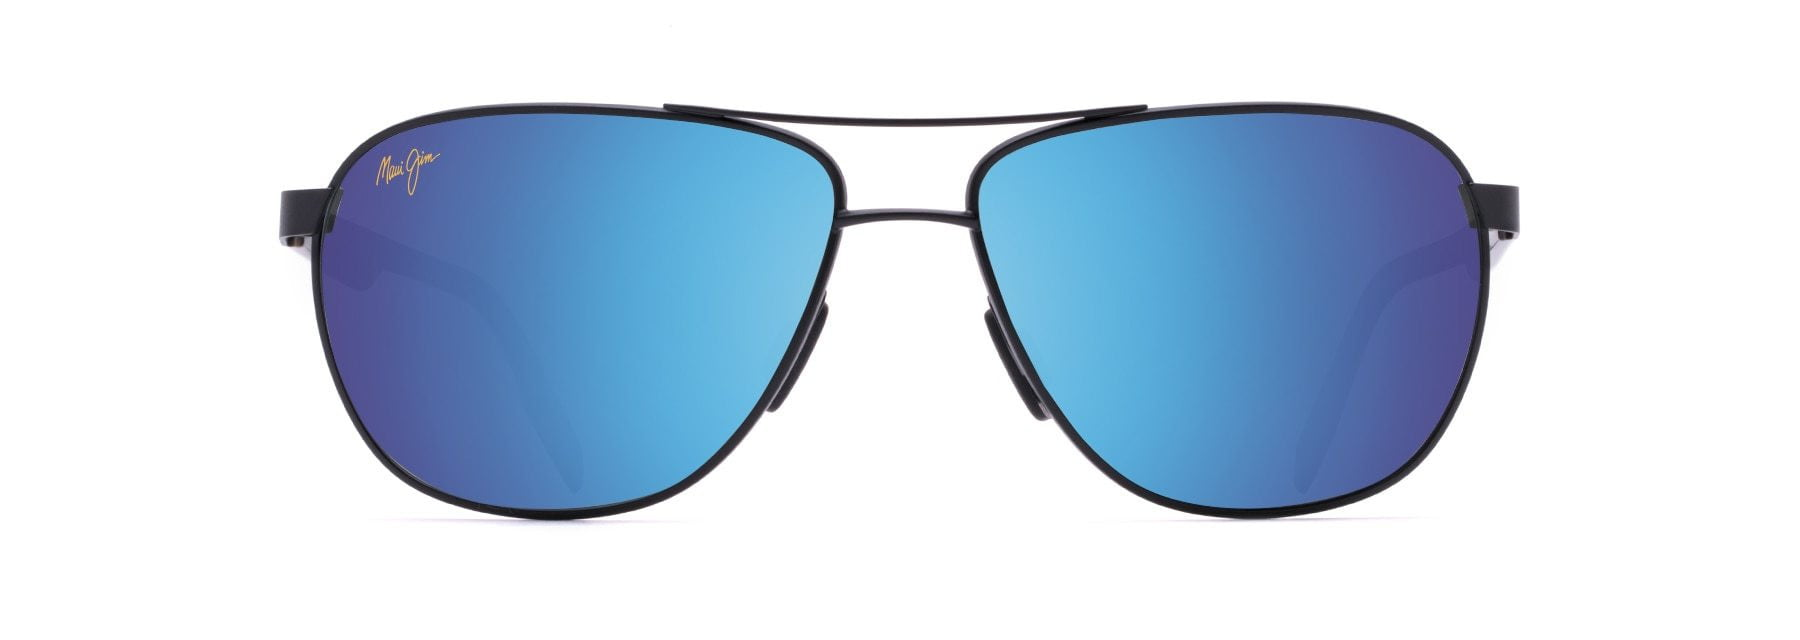 MyMaui Castles MM728-019 Sunglasses